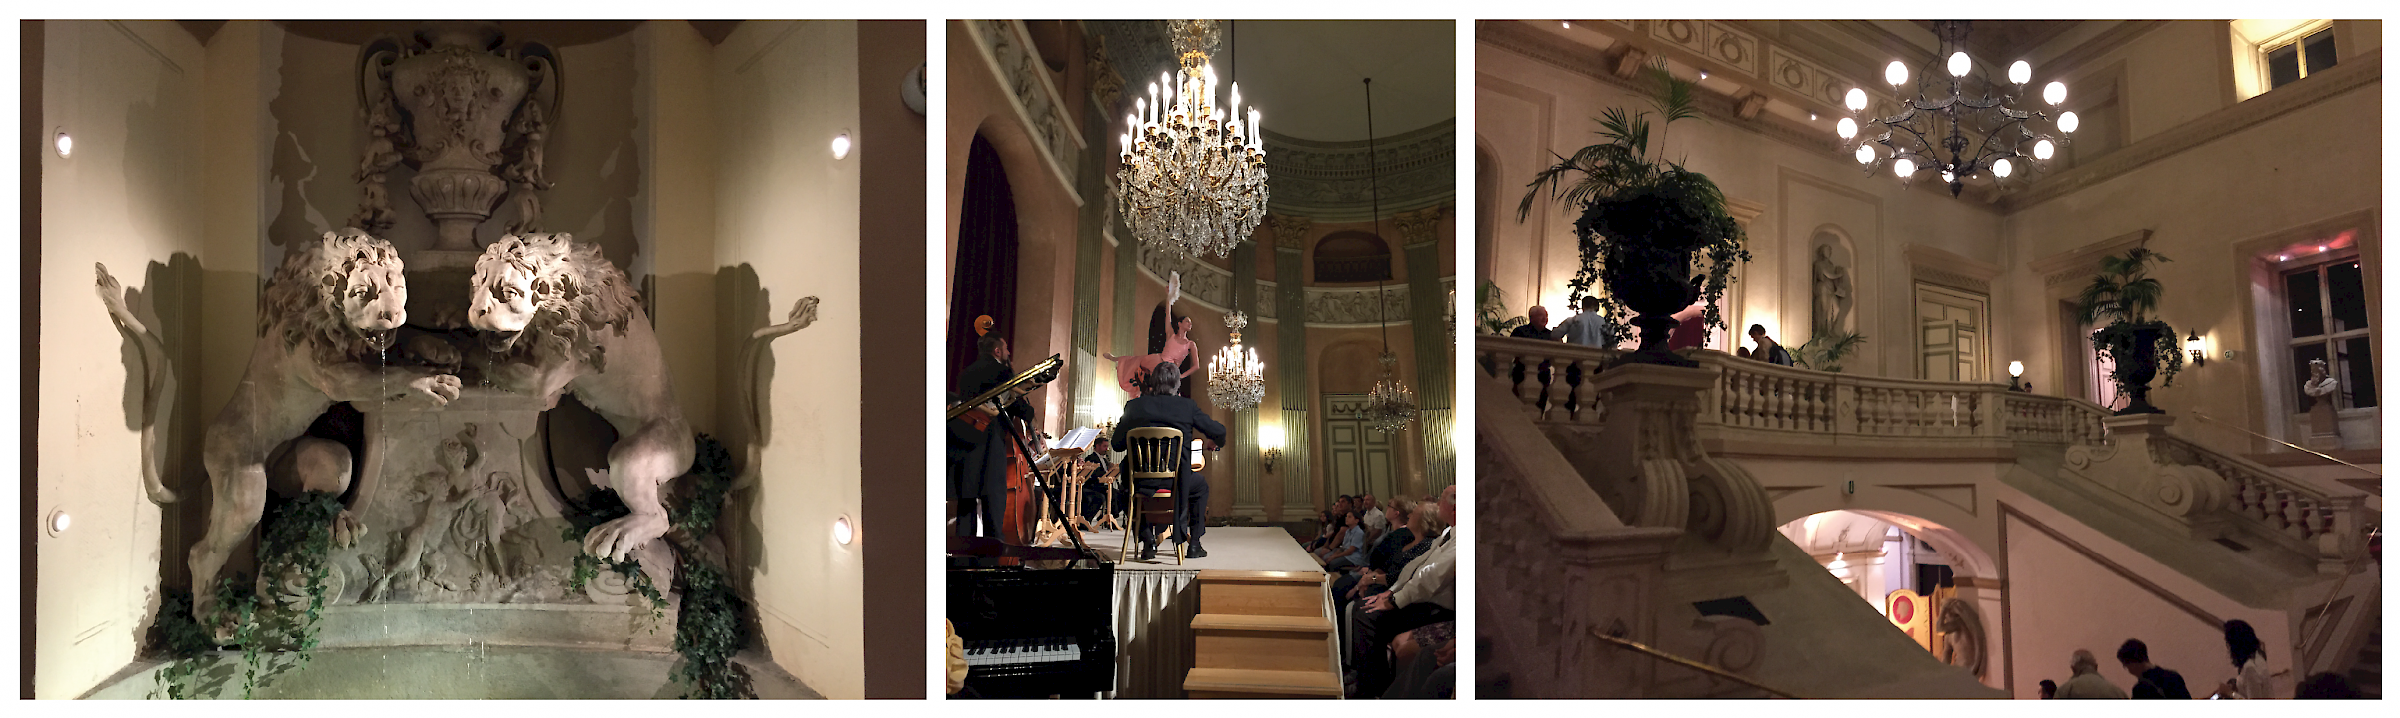 Classic Waltz and Operetta Concert at the Viennese Palais